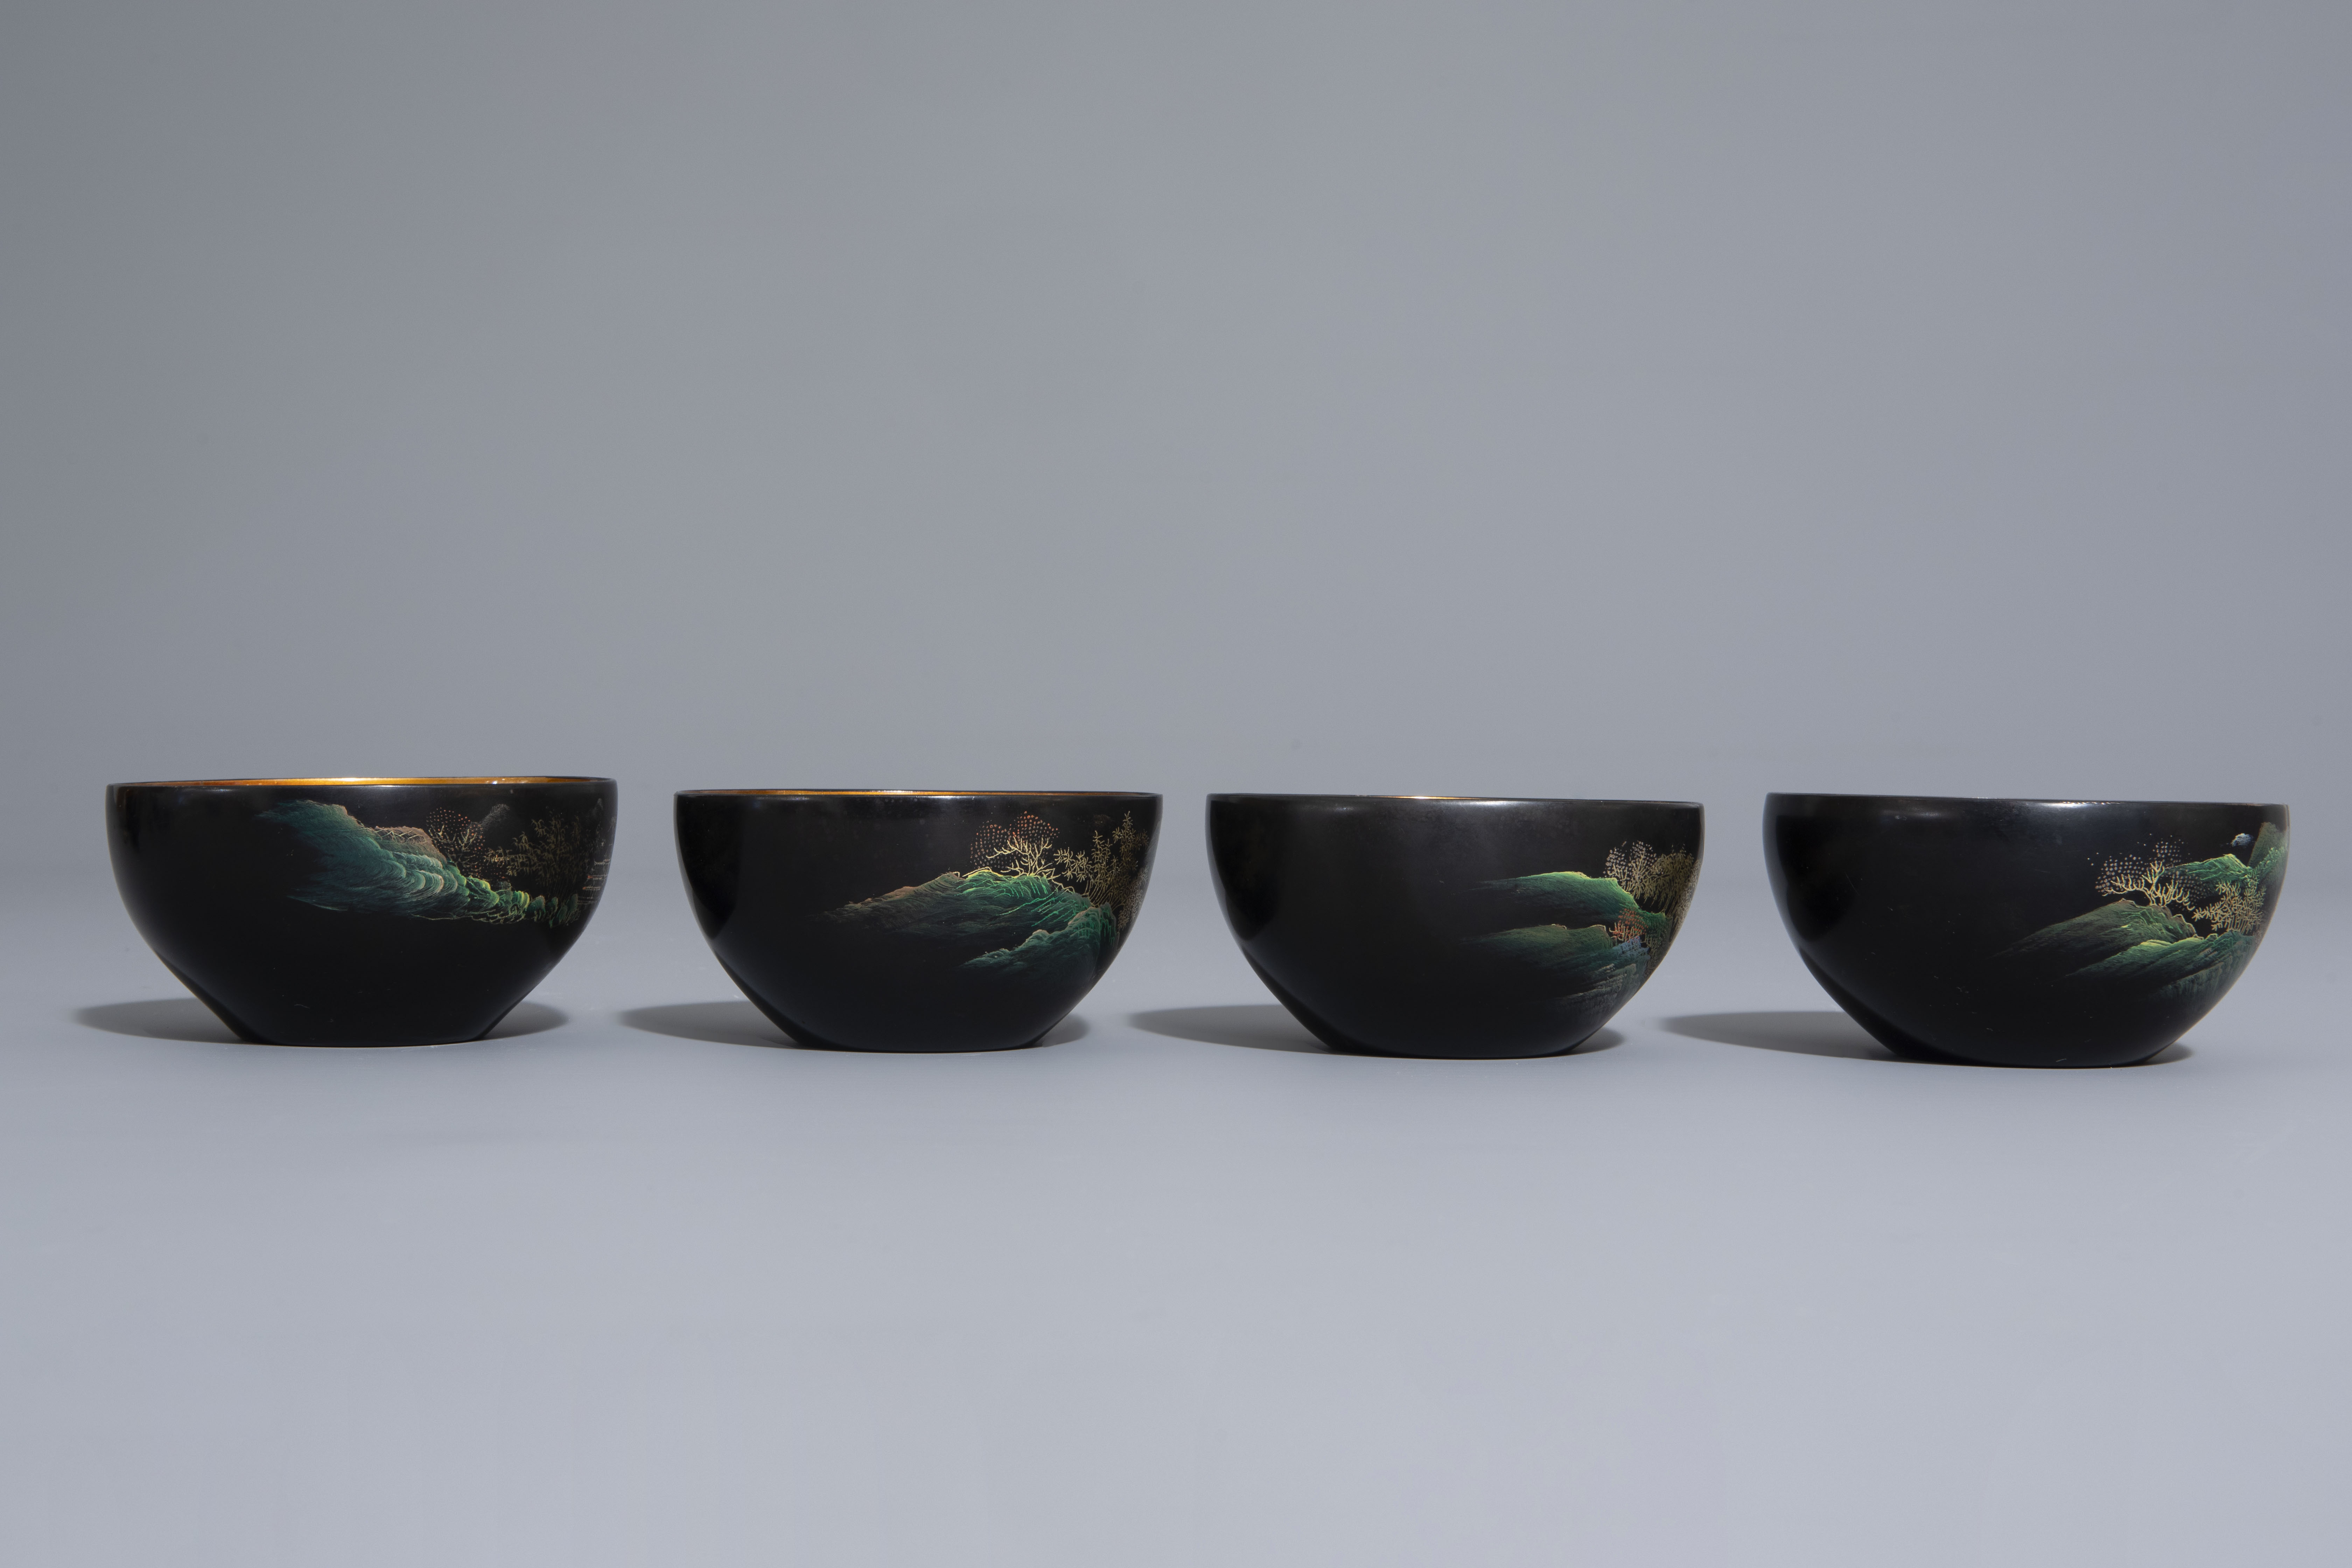 An extensive Chinese Foochow lacquer Shen Shao'an style coffee and tea service, 20th C. - Image 9 of 23